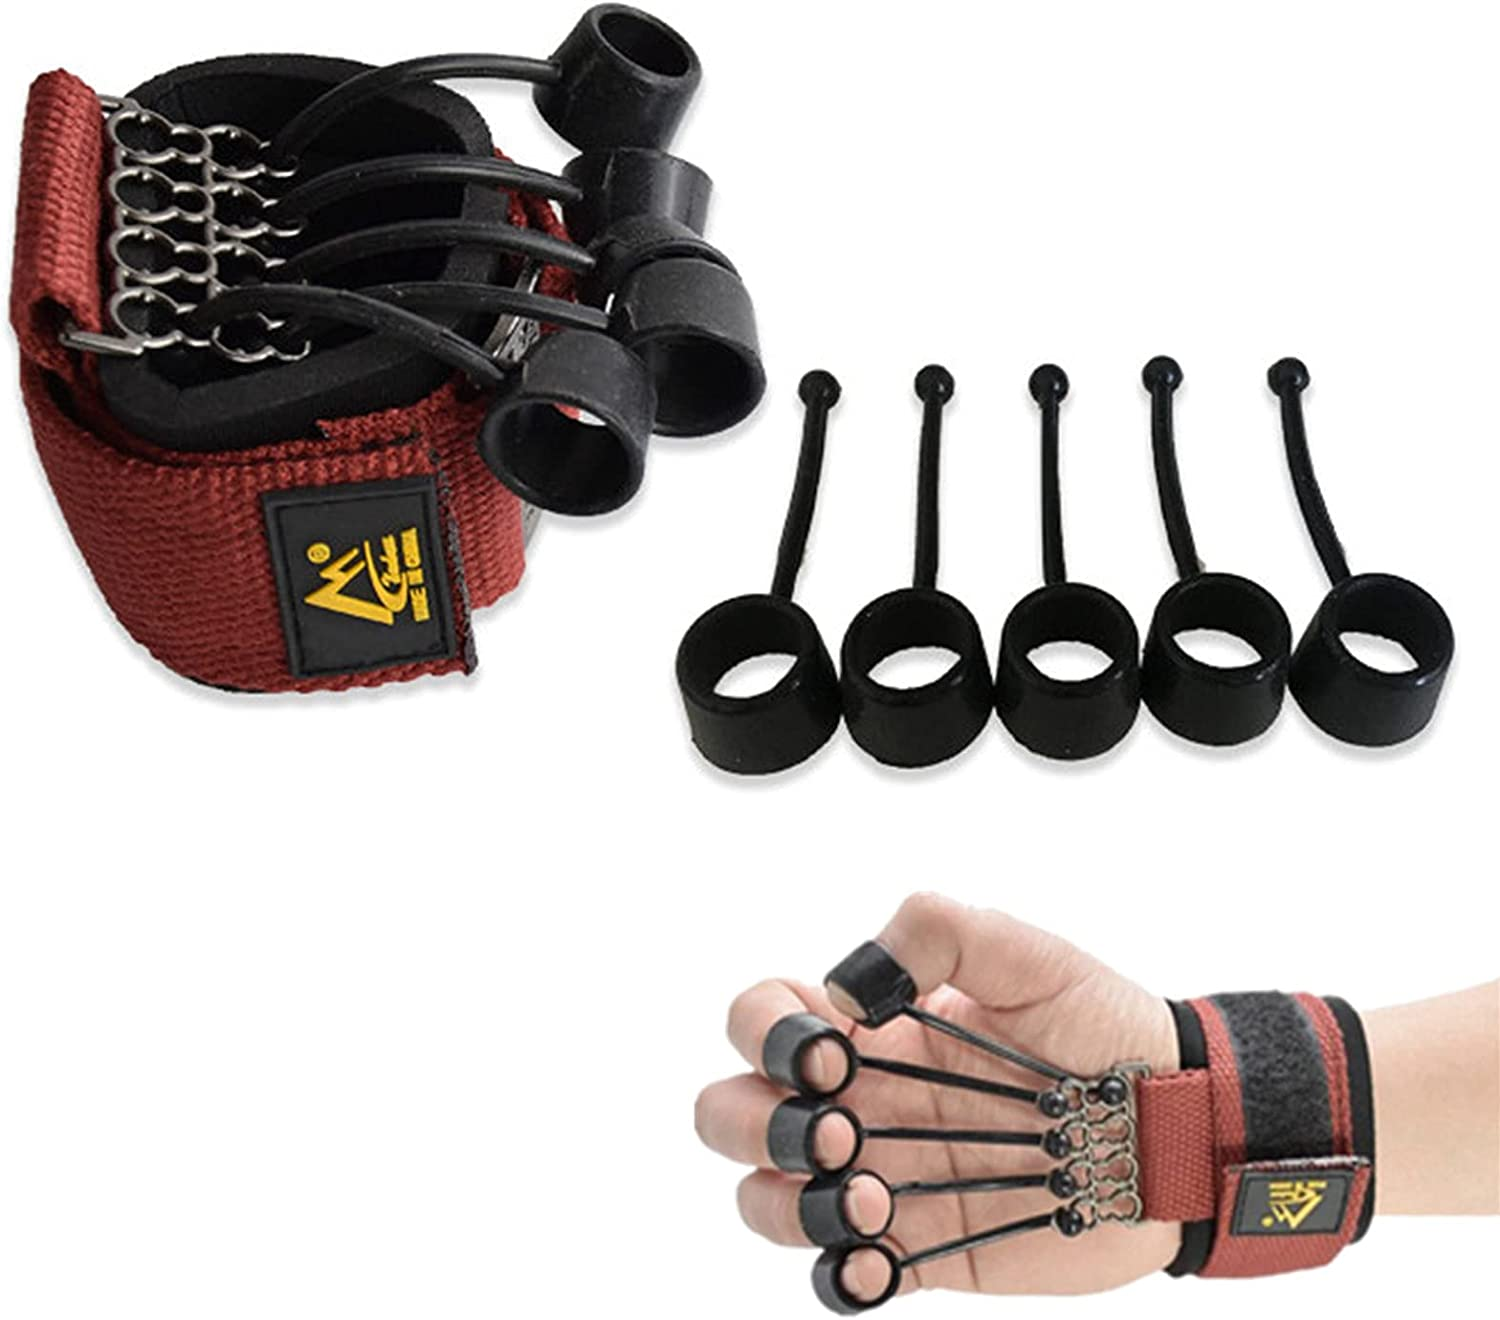 SHXJHXC Finger Exercisers 2021 Special price for a limited time model Hand Grip Strengthener for Strength